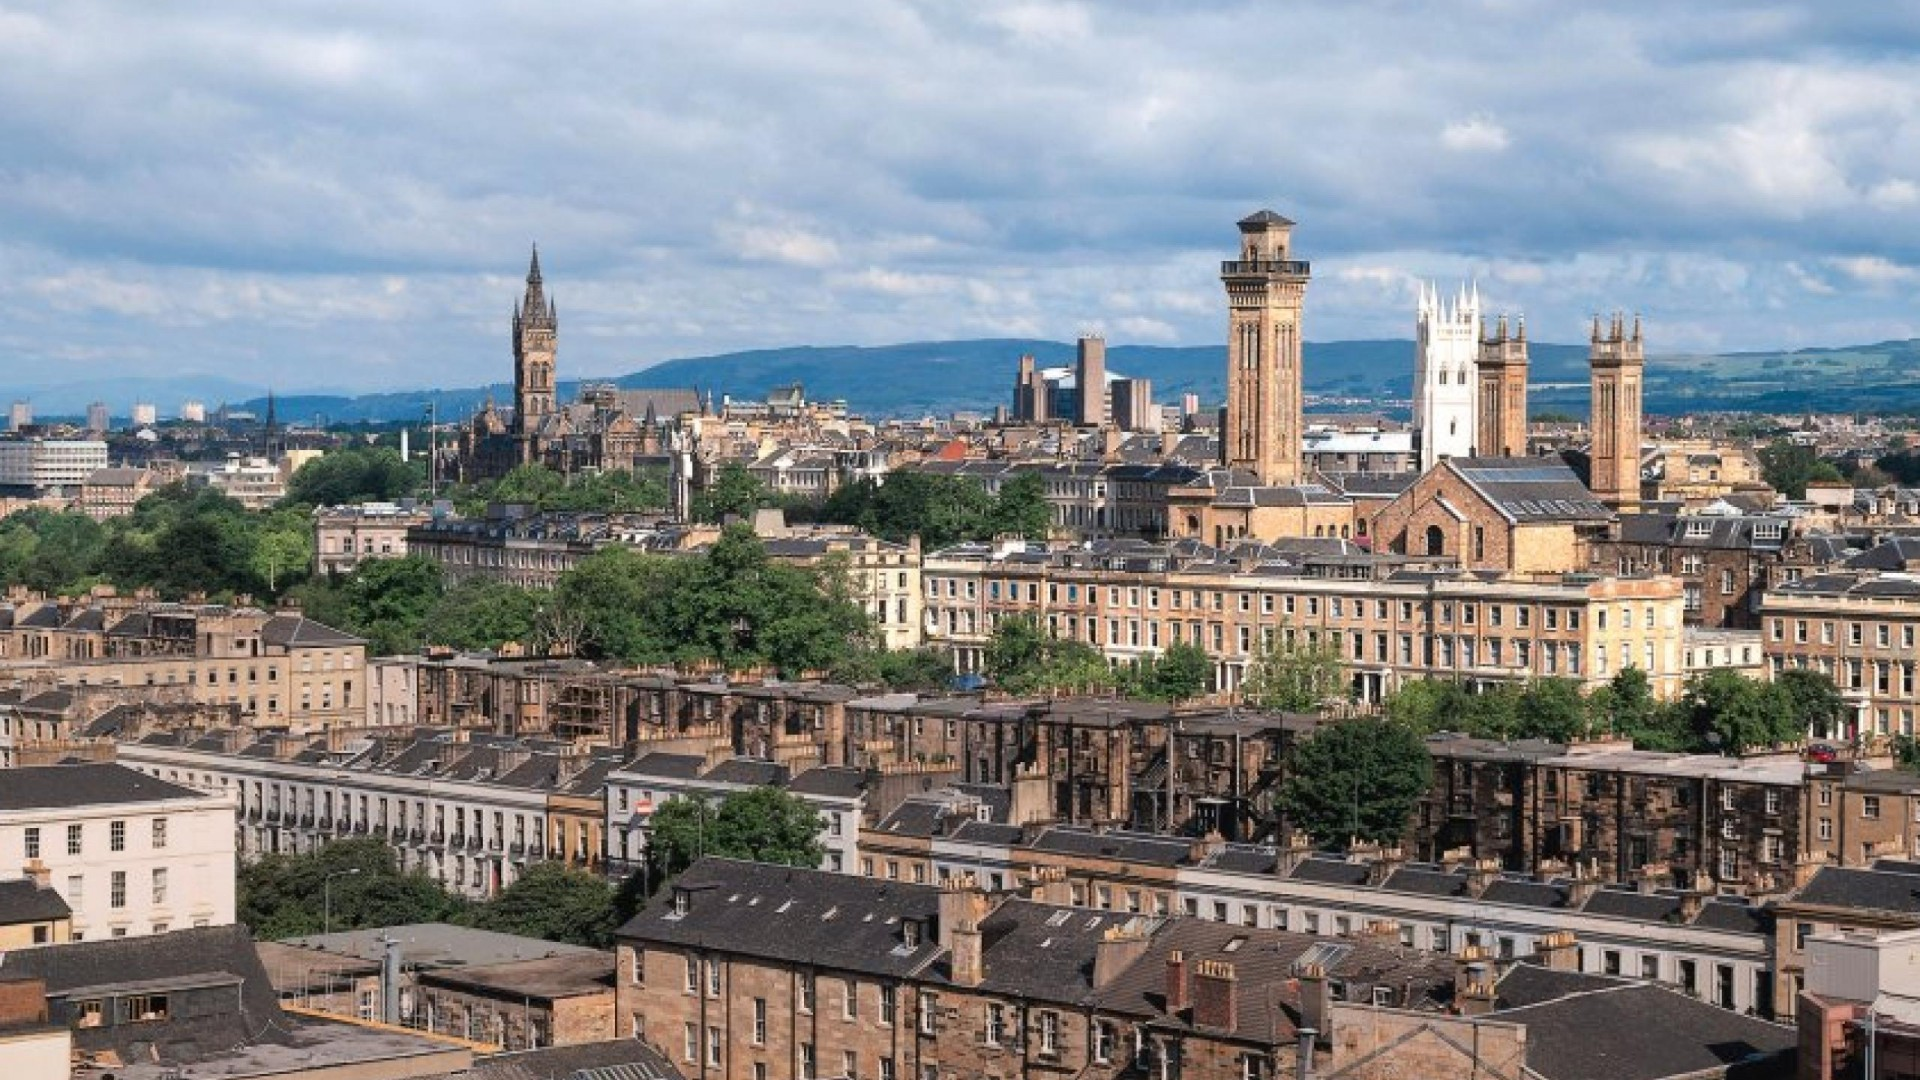 HDQ Beautiful Glasgow Images & Wallpapers (Georgianna Cartledge, 08.05.14)